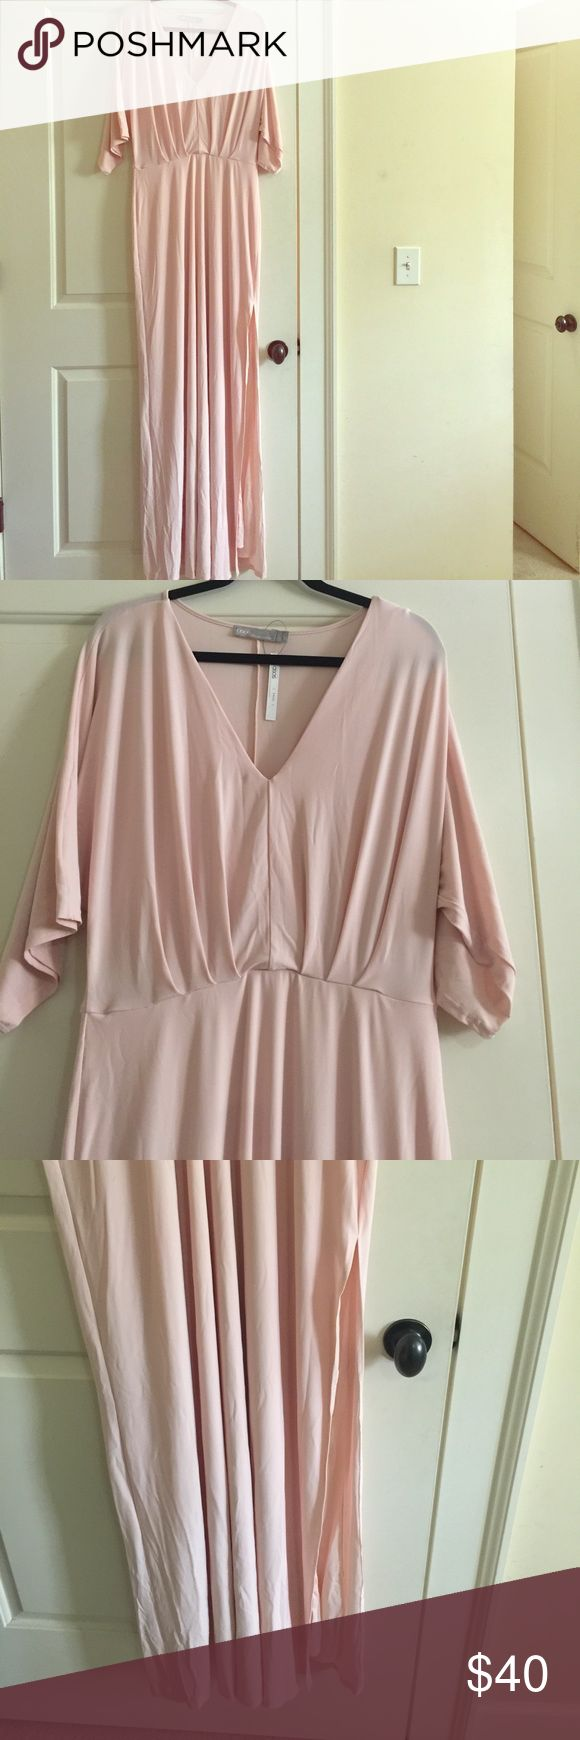 Asos Tall Kimono Plunge Maxi Dress NWT Heavenly Asos light pink Maxi dress! Kimono sleeves with slit to thigh make this dress an instant favorite! Perfect for bridesmaid dress or a night out with the girls that you can wear over and over again! Small mark on top left neck line. Asos Dresses Maxi